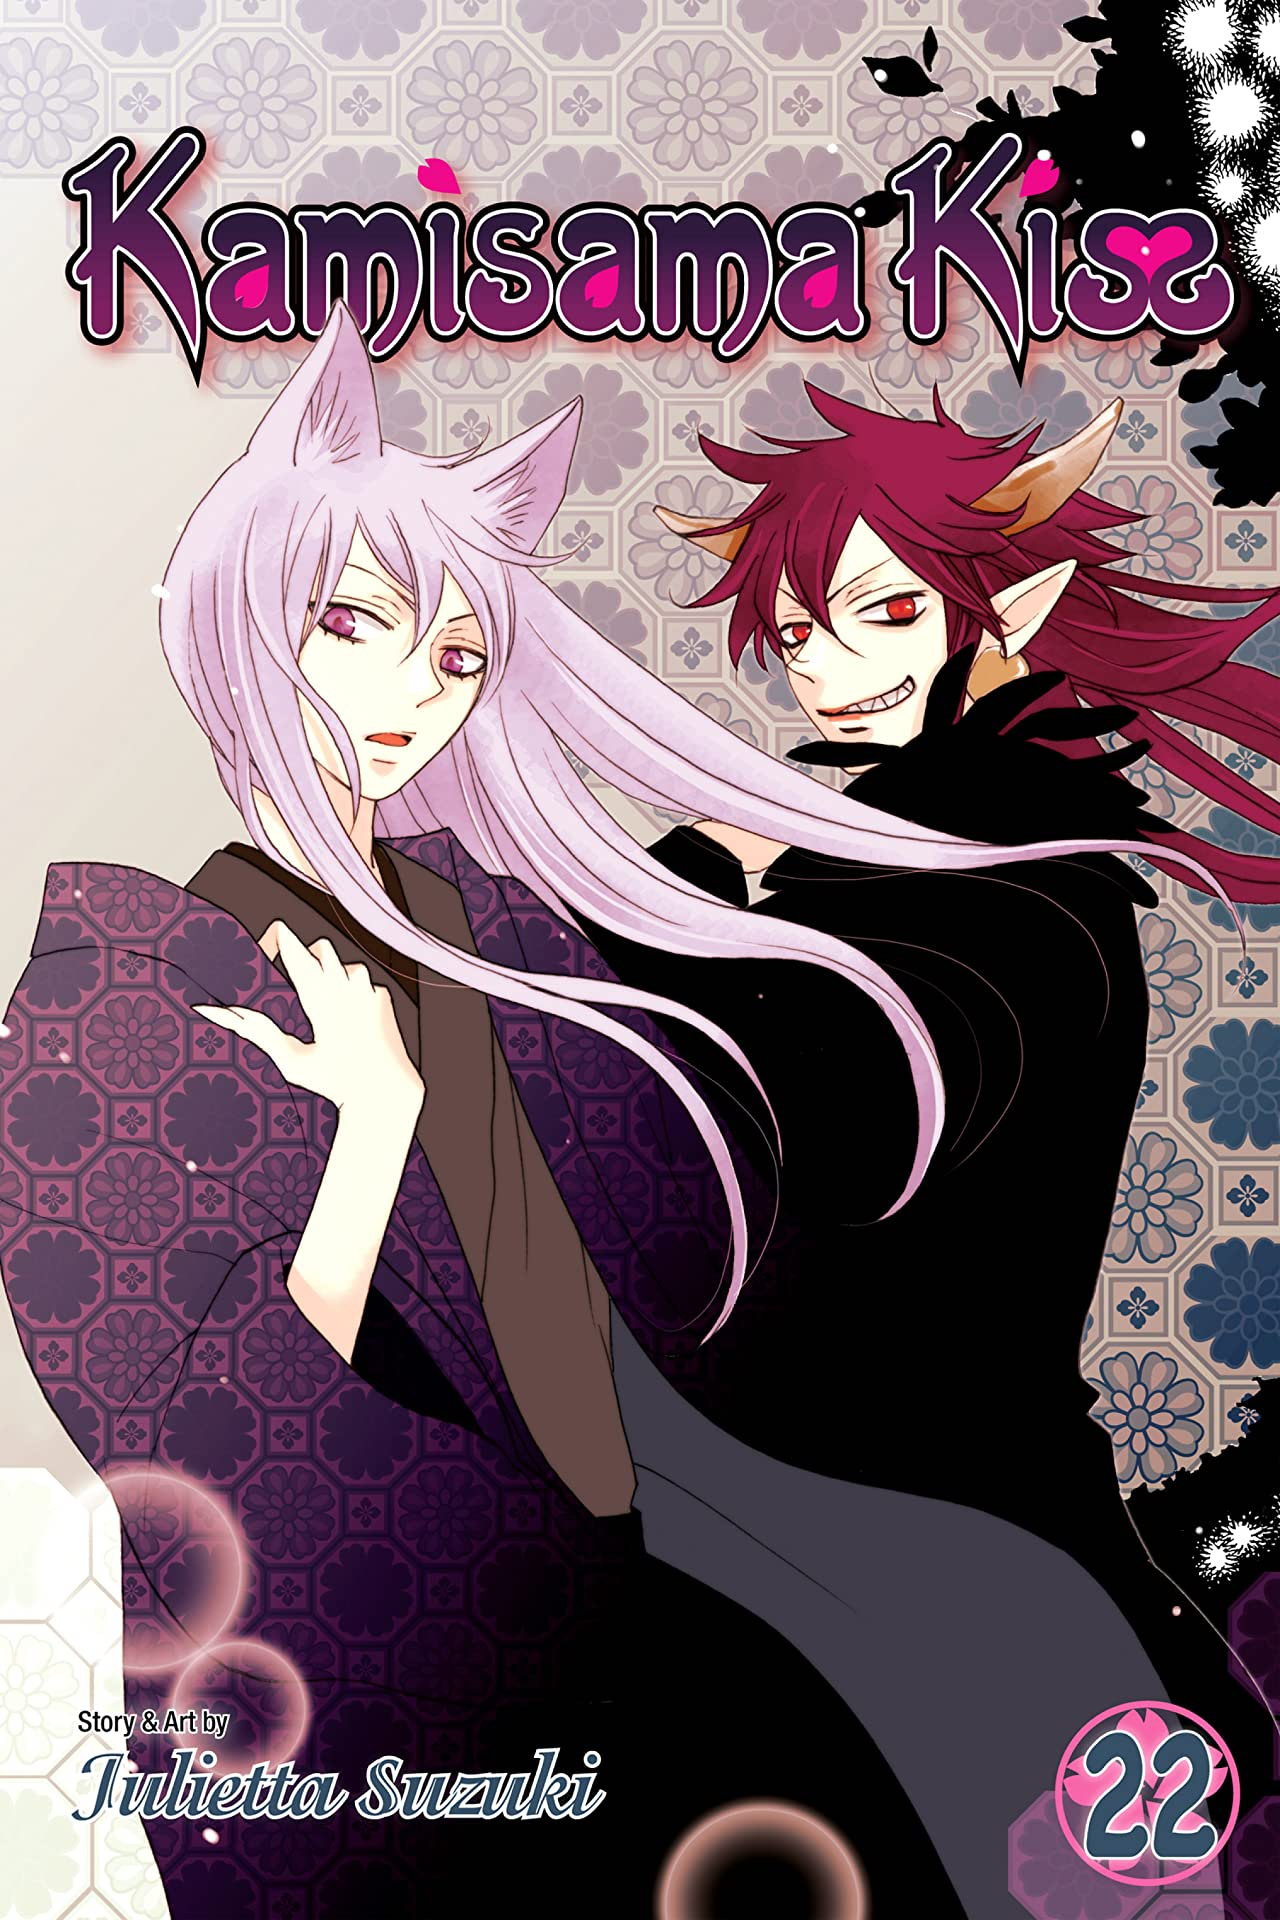 Kamisama Kiss Vol. 22